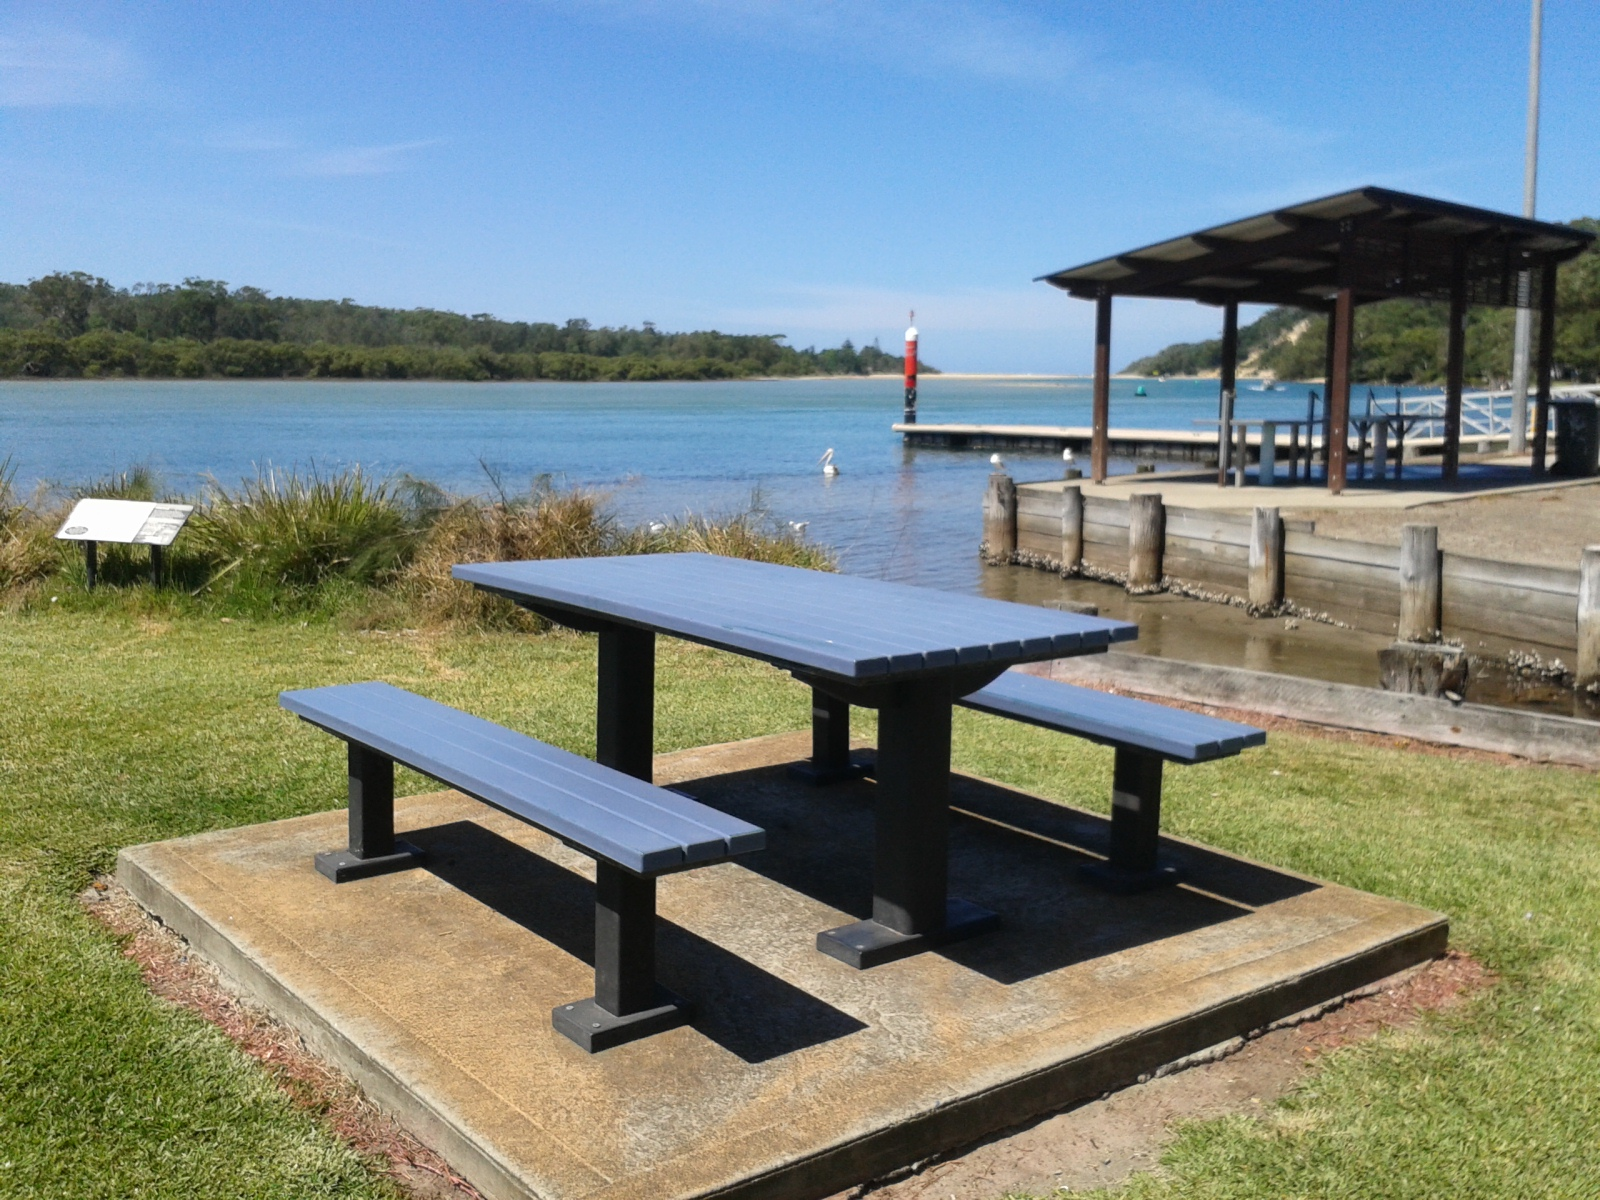 Best nsw picnic spots its about location location location